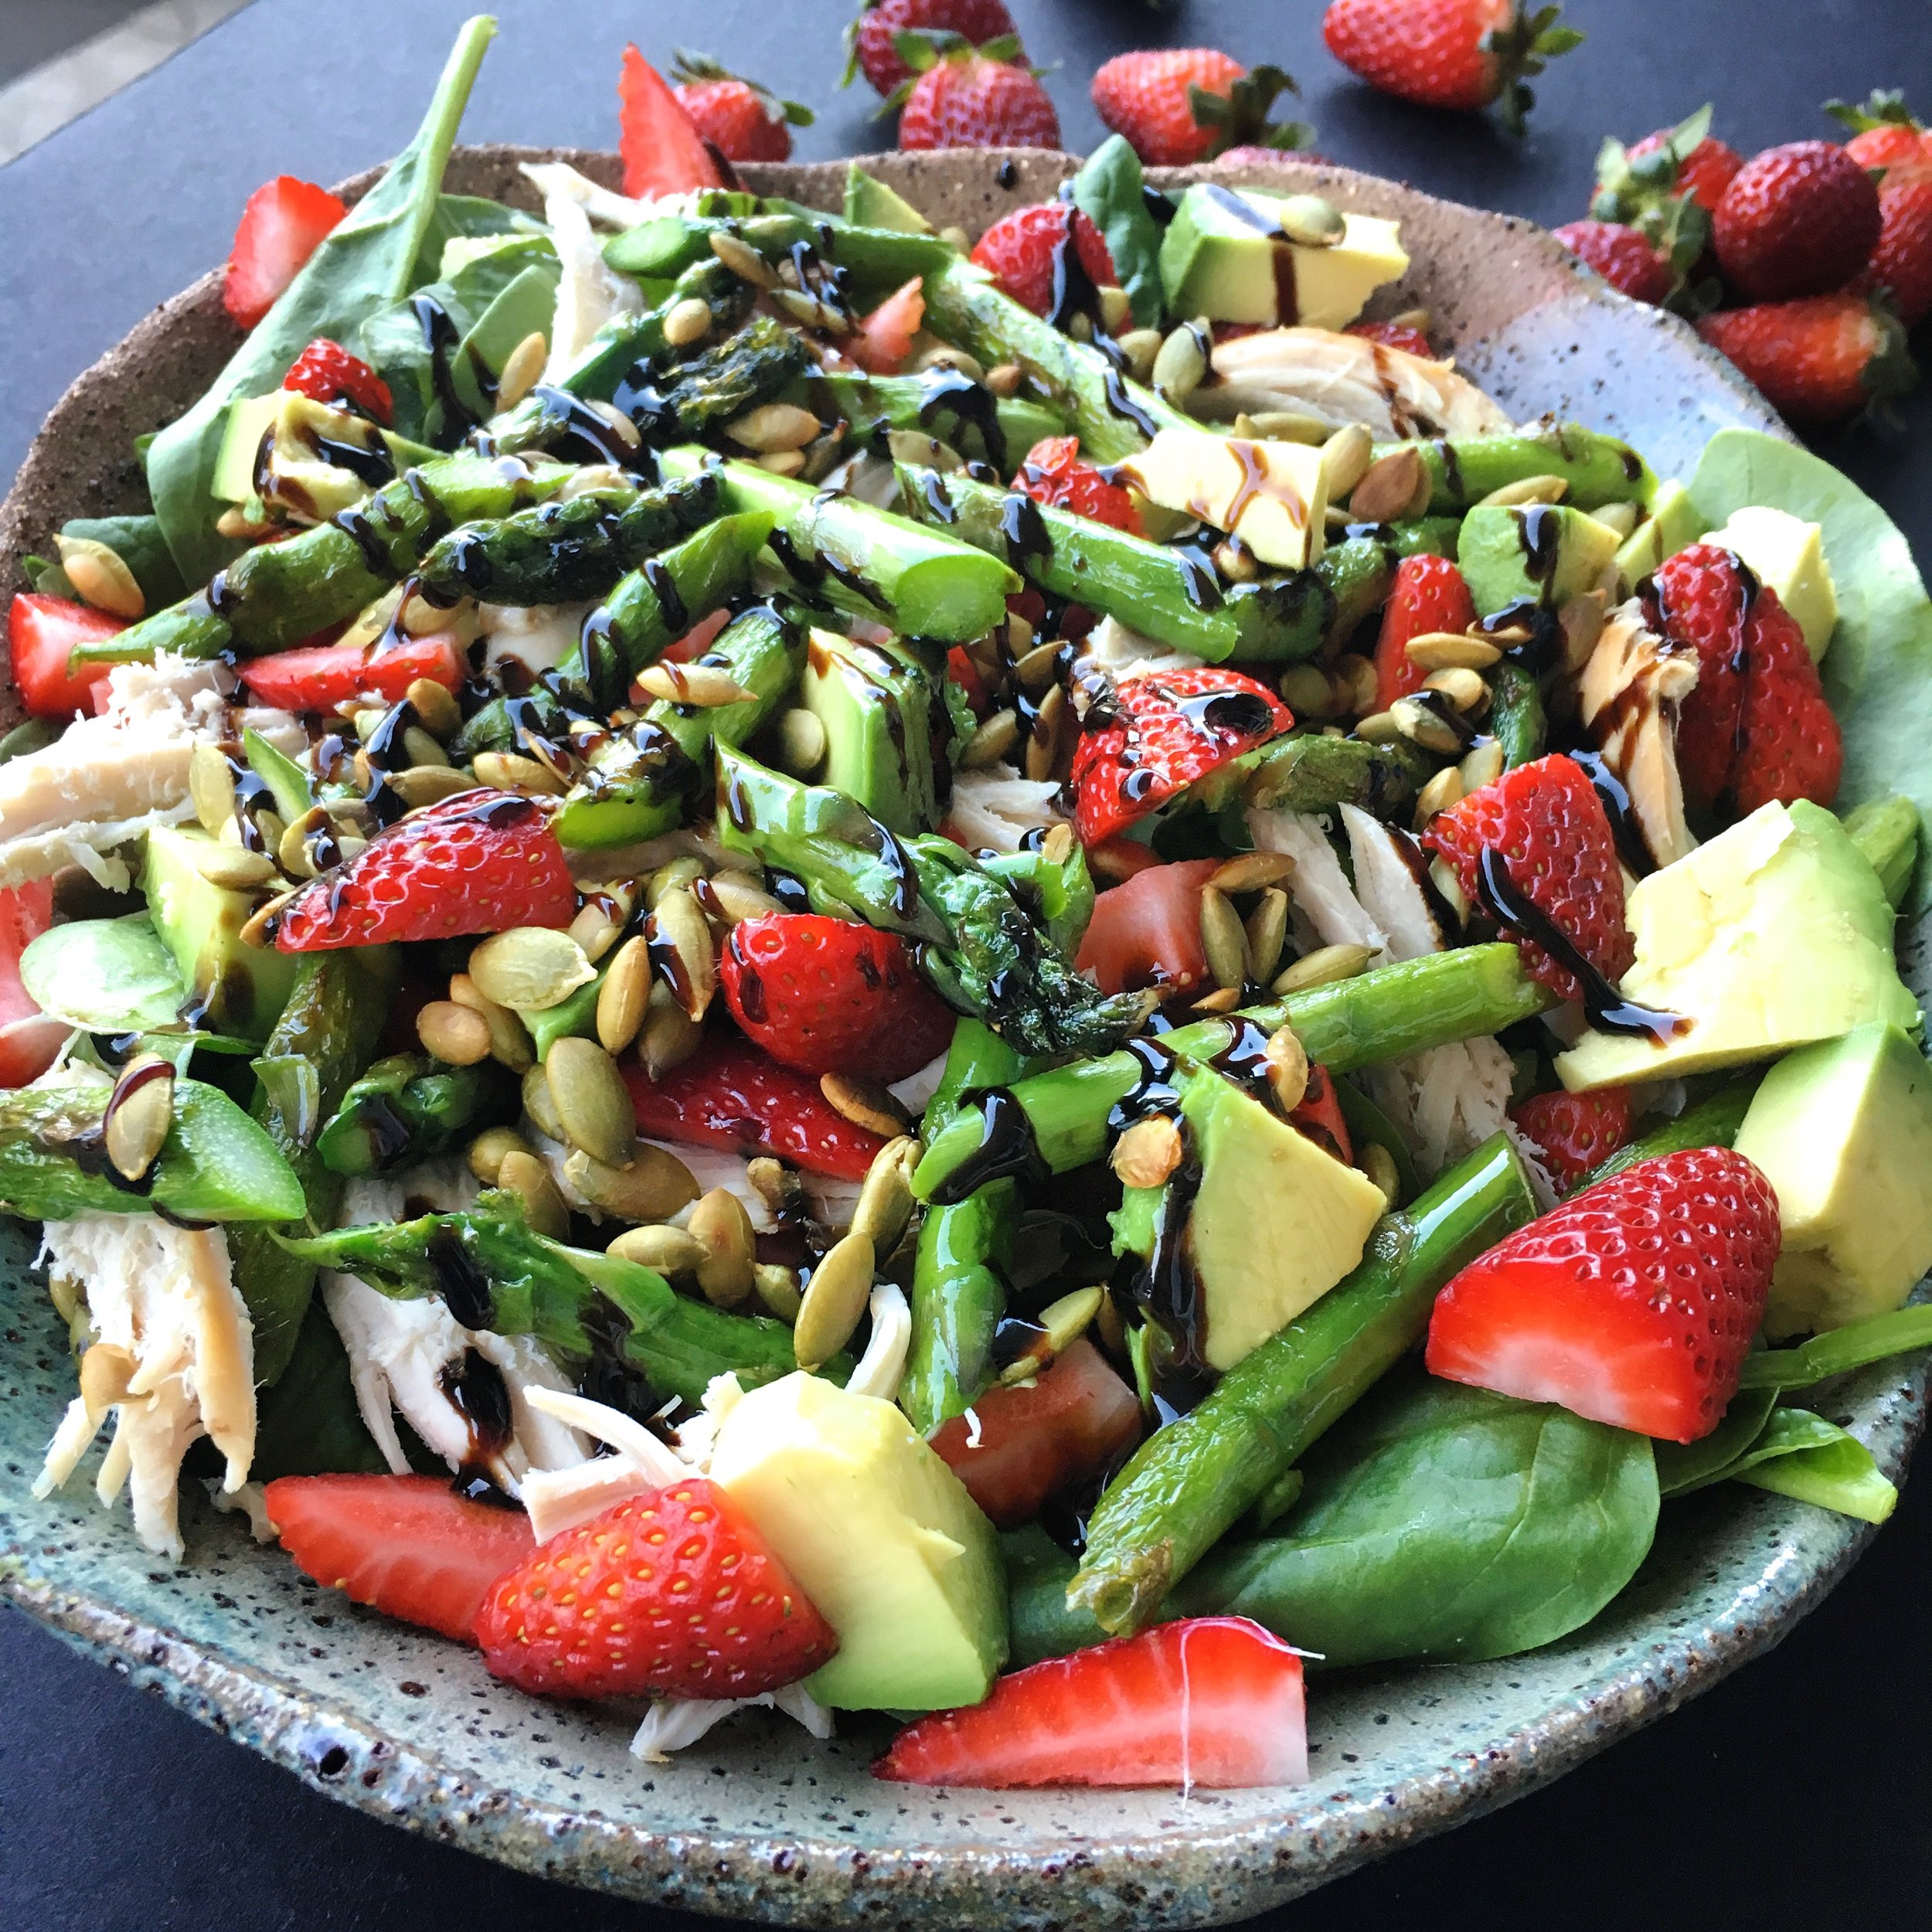 Click the image for recipe: Chicken Salad with Strawberries + Balsamic dressing.